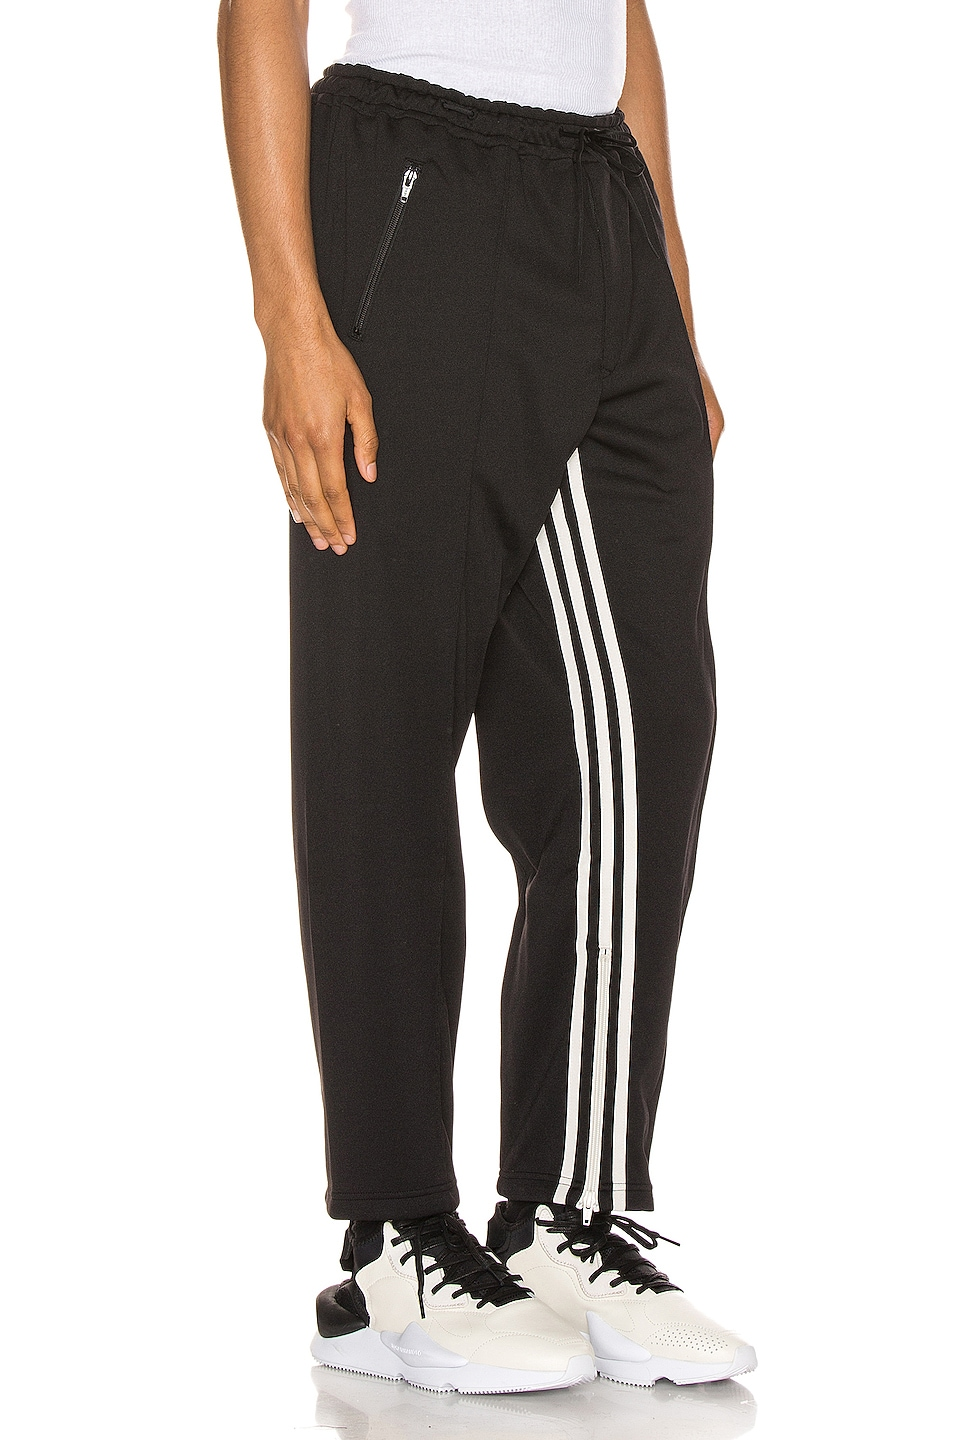 Image 3 of Y-3 Yohji Yamamoto 3 Striped Cropped Track Pant in Black & Ecru